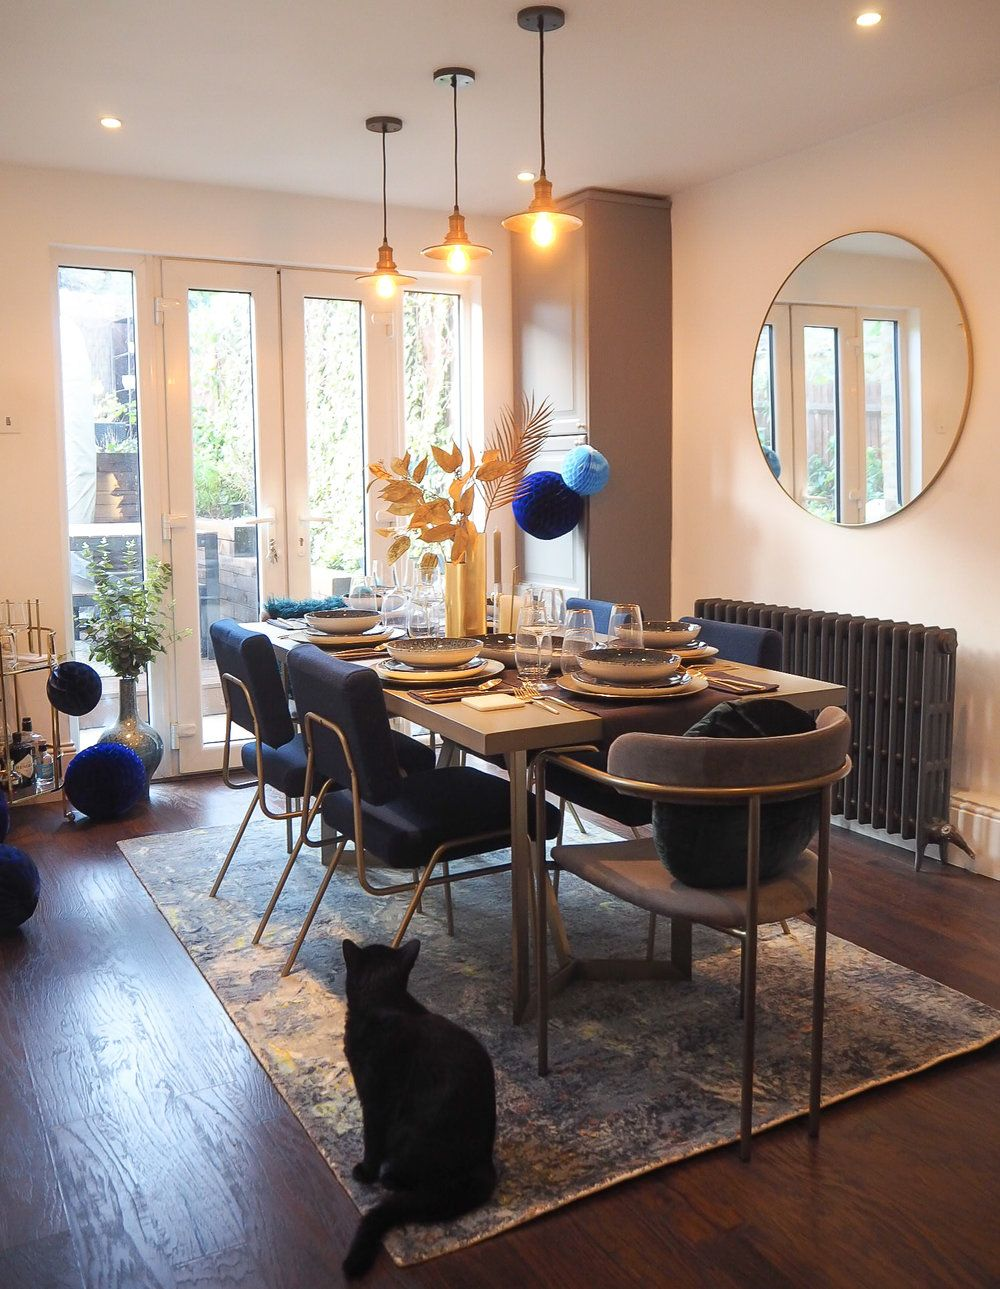 Amanda Cotton Of Houselust A Colourful Victorian Home Renovation